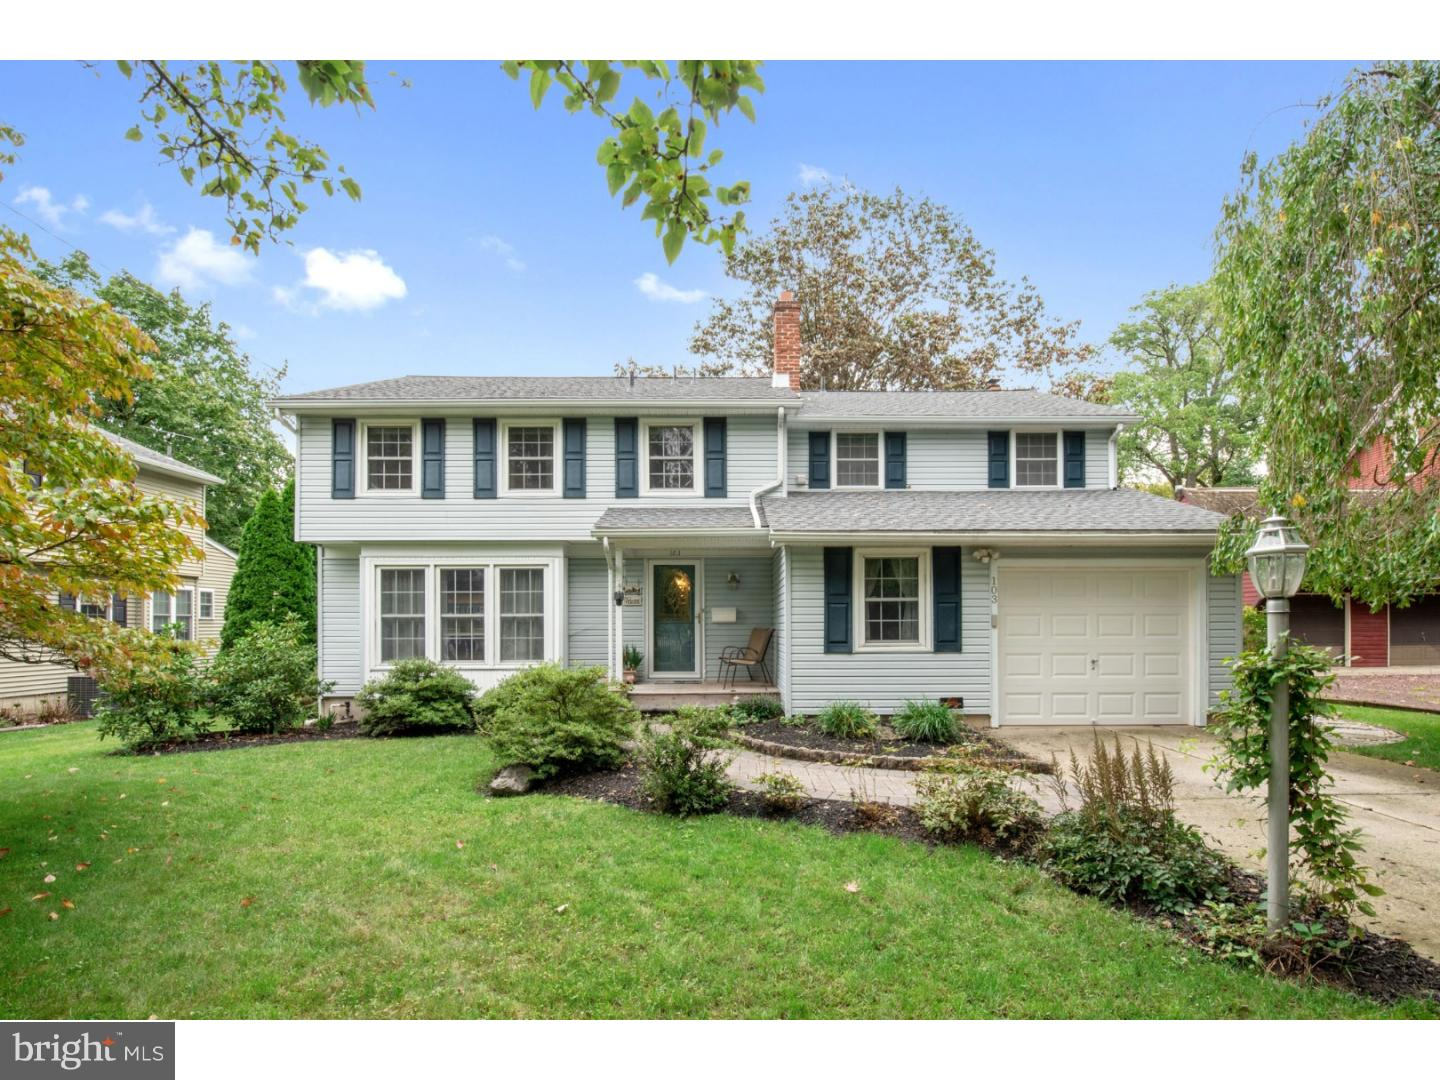 Single Family Home for Sale at 103 CENTRAL Avenue Stratford, New Jersey 08084 United States